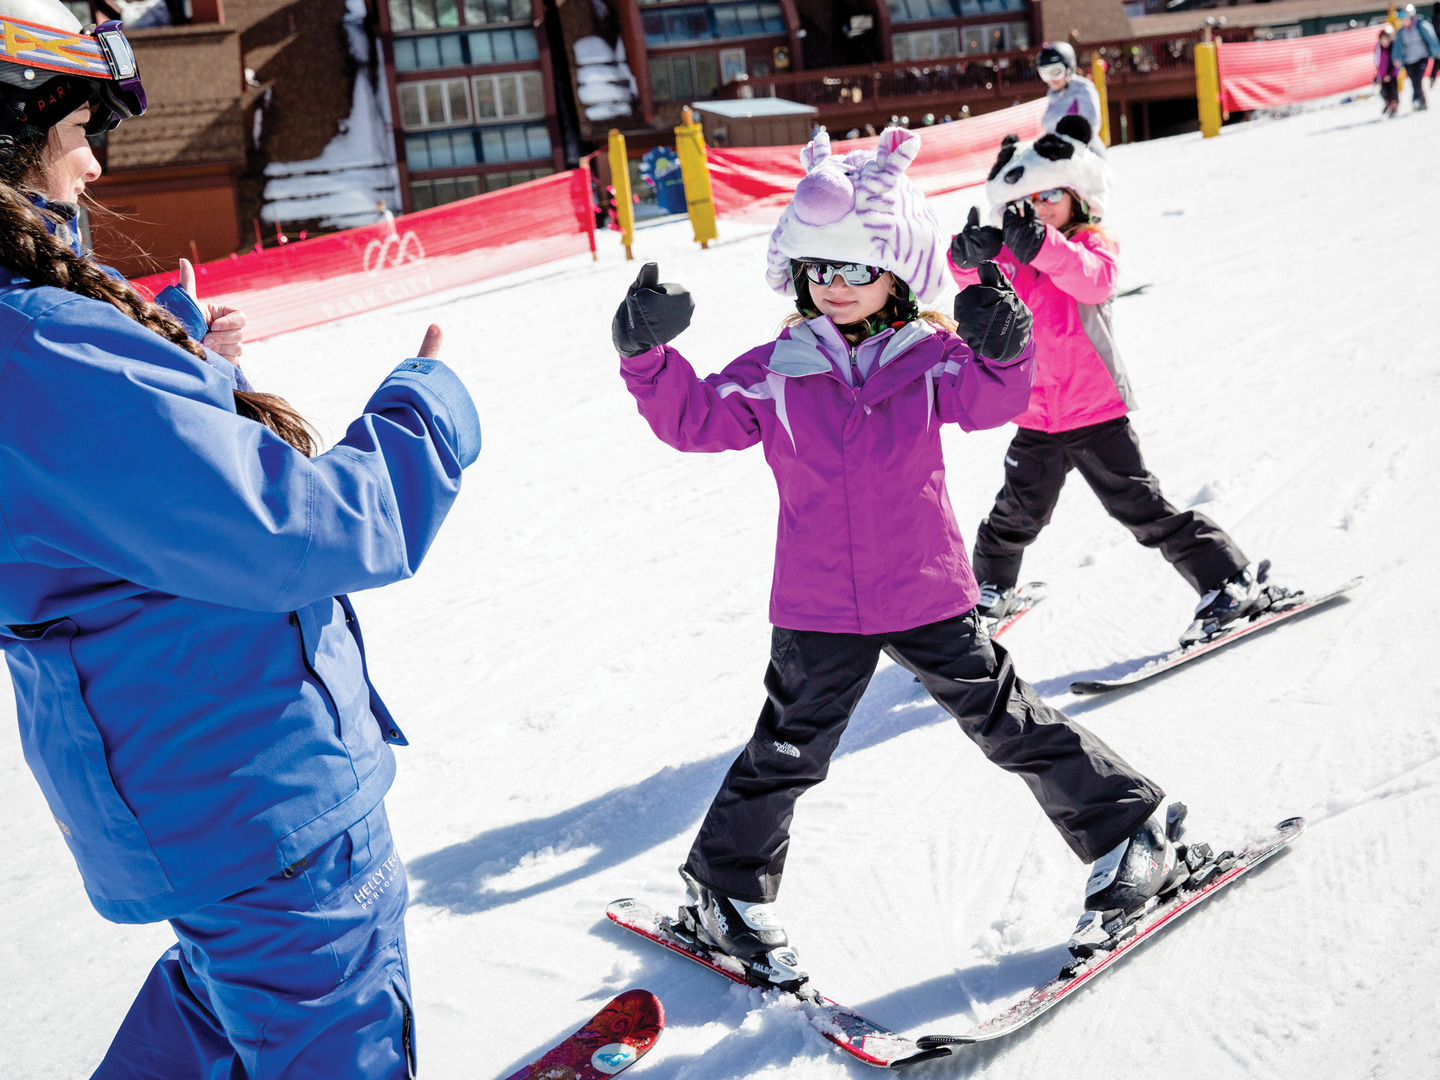 Marriott's MountainSide Ski Lessons Thumbs Up. Marriott's MountainSide is located in Park City, Utah United States.